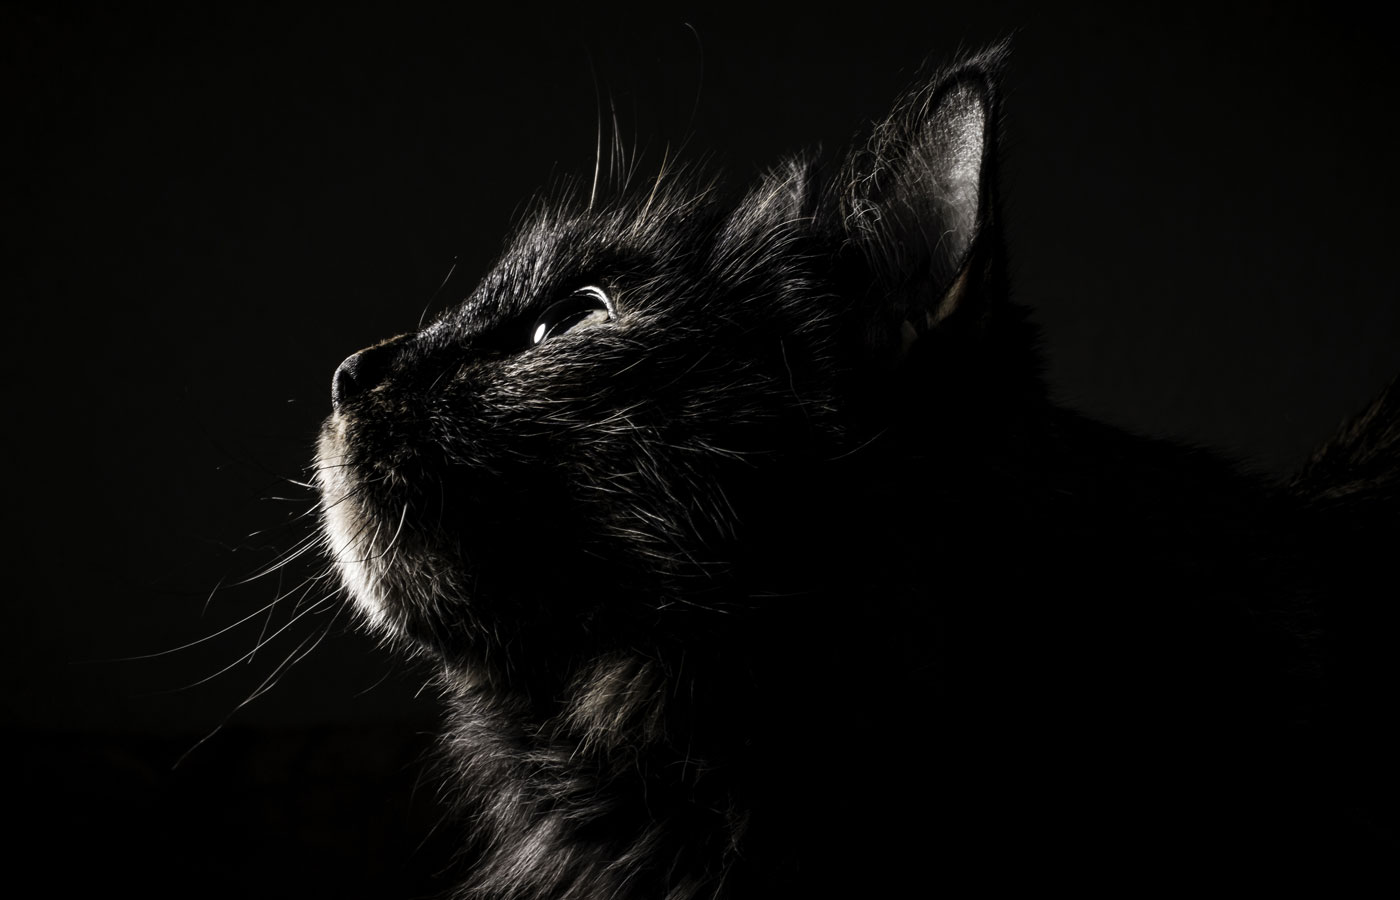 Black cat, black background